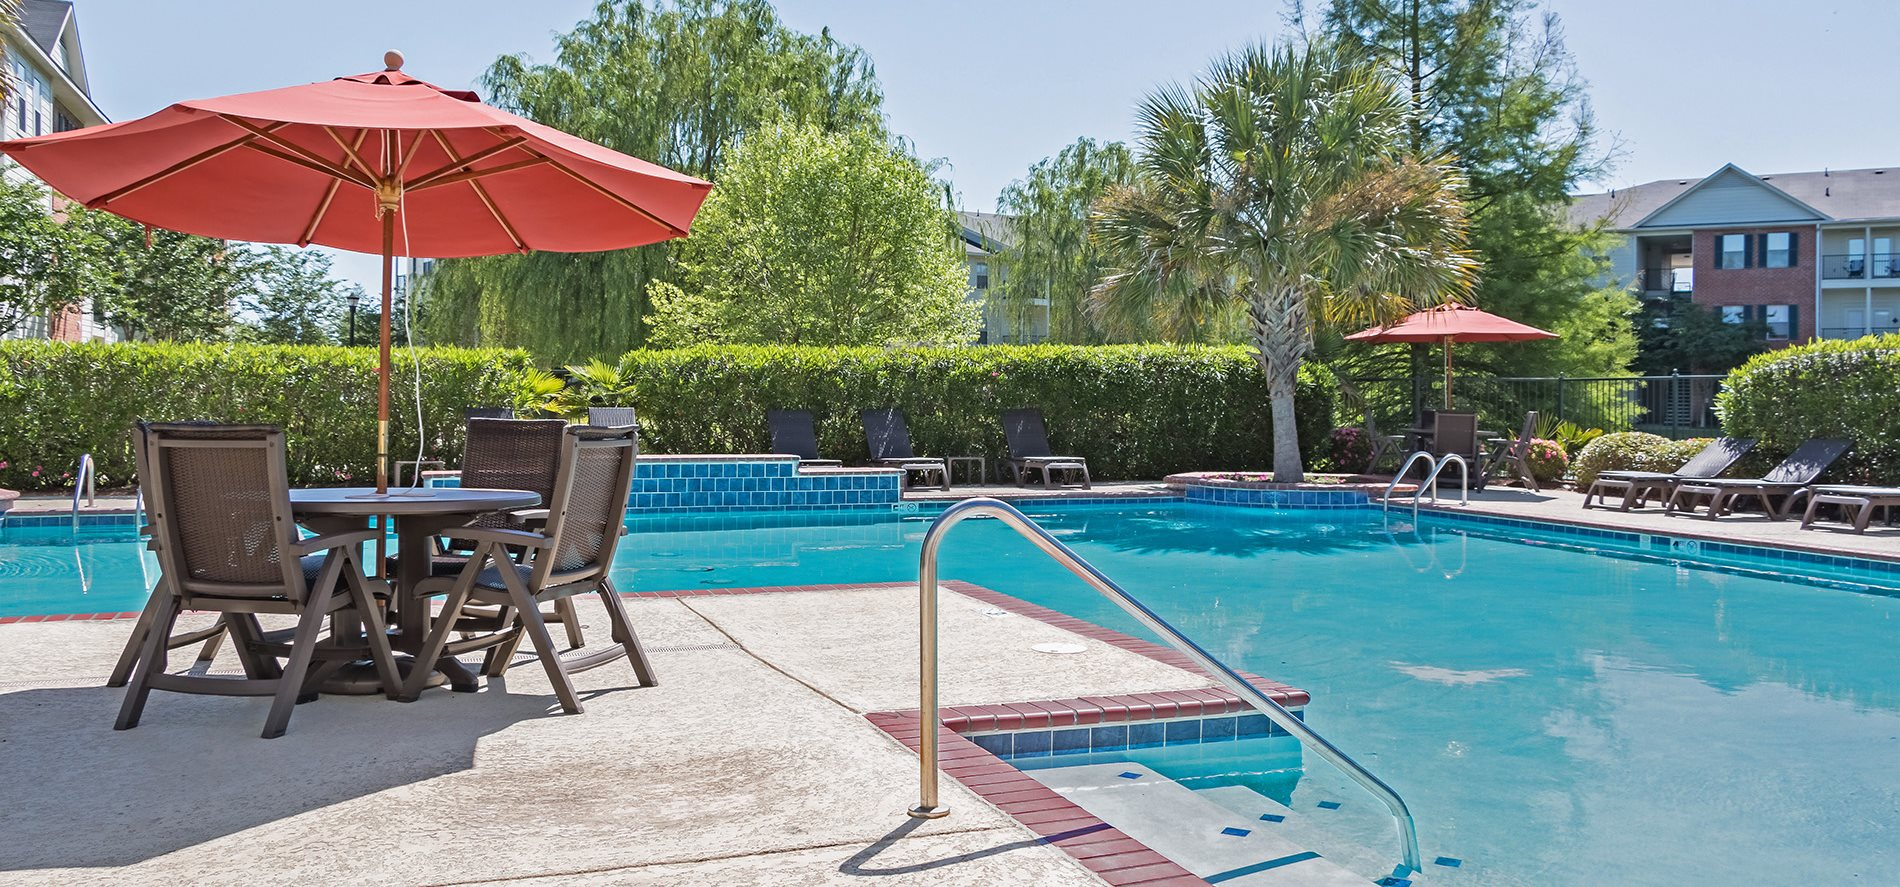 Pool Area at Ultris Island Park Apartments in Shreveport, Louisiana, LA